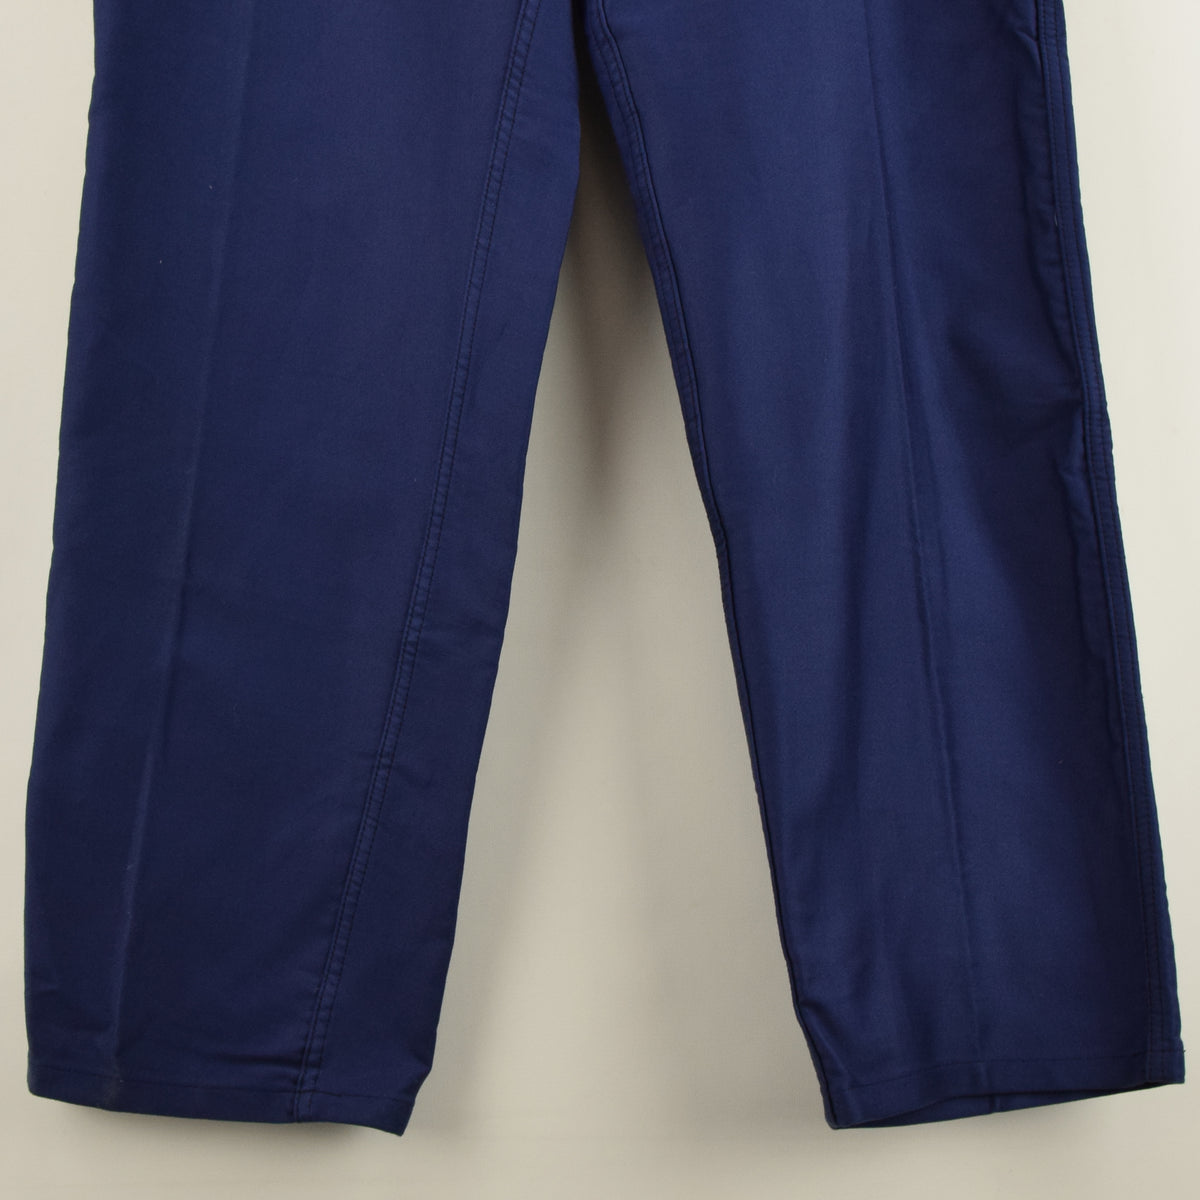 Vintage Adolphe Lafont Workwear Blue French Work Trousers 38 W 32 L front hem